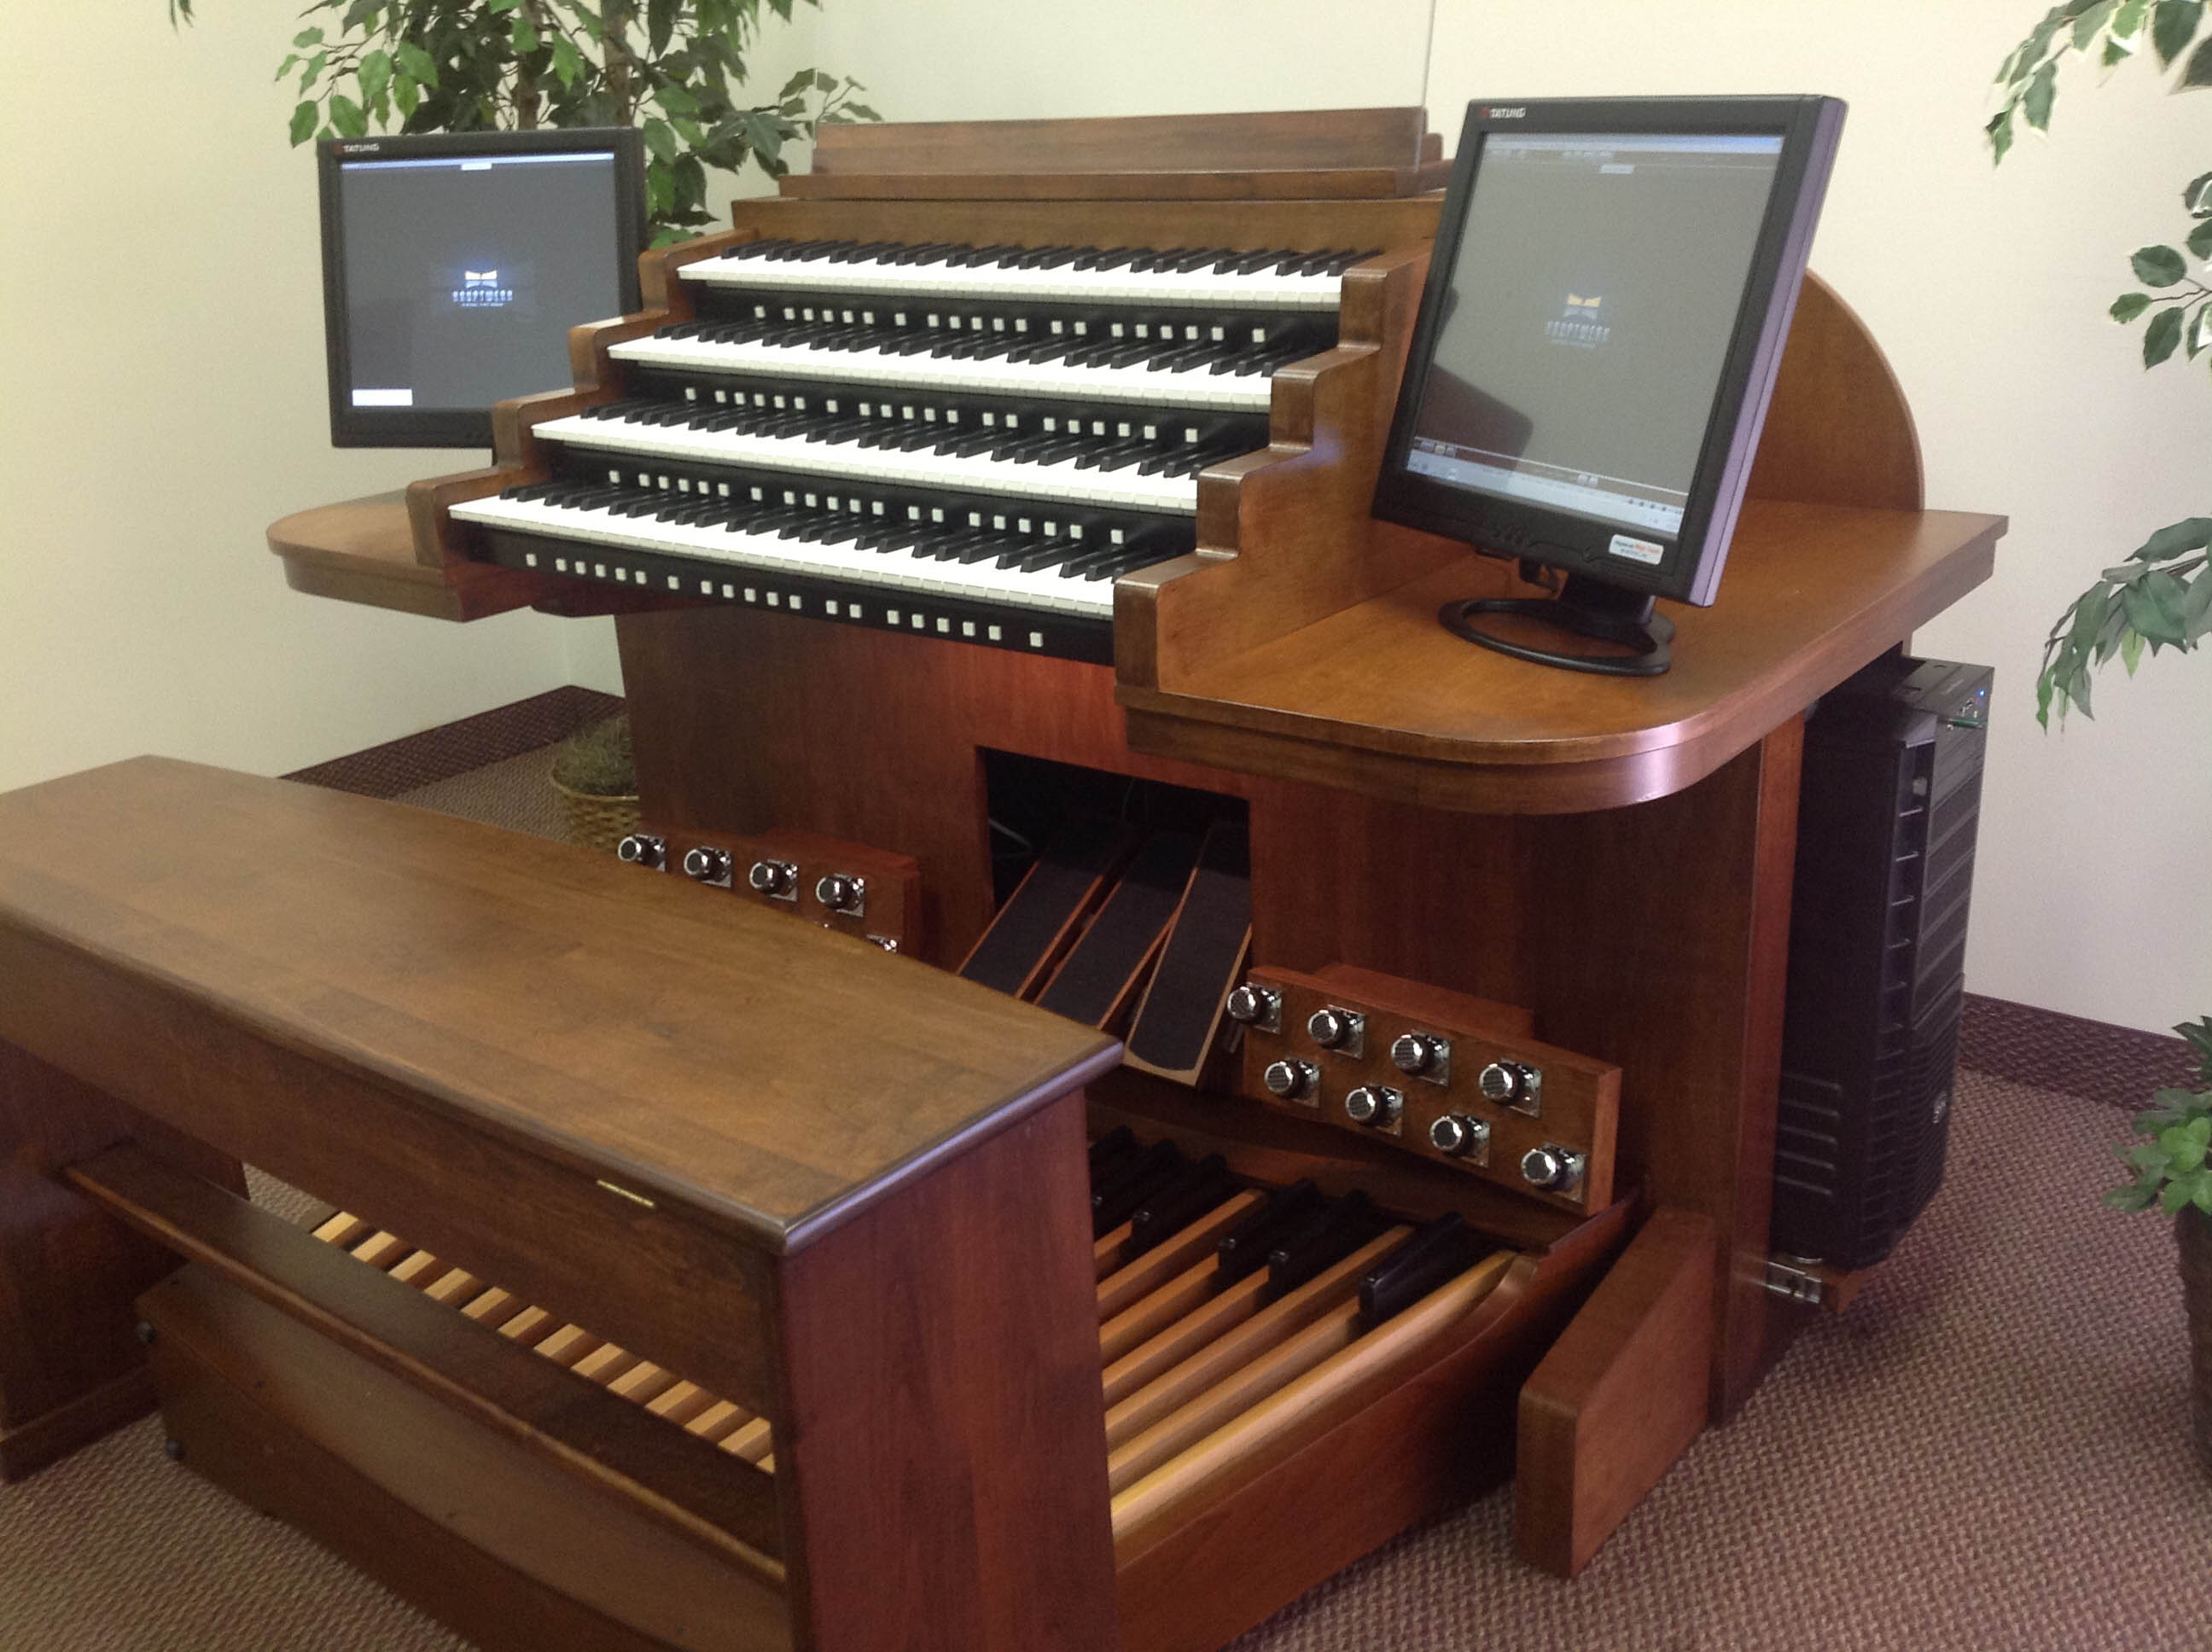 4 Manual organ Console for Sale